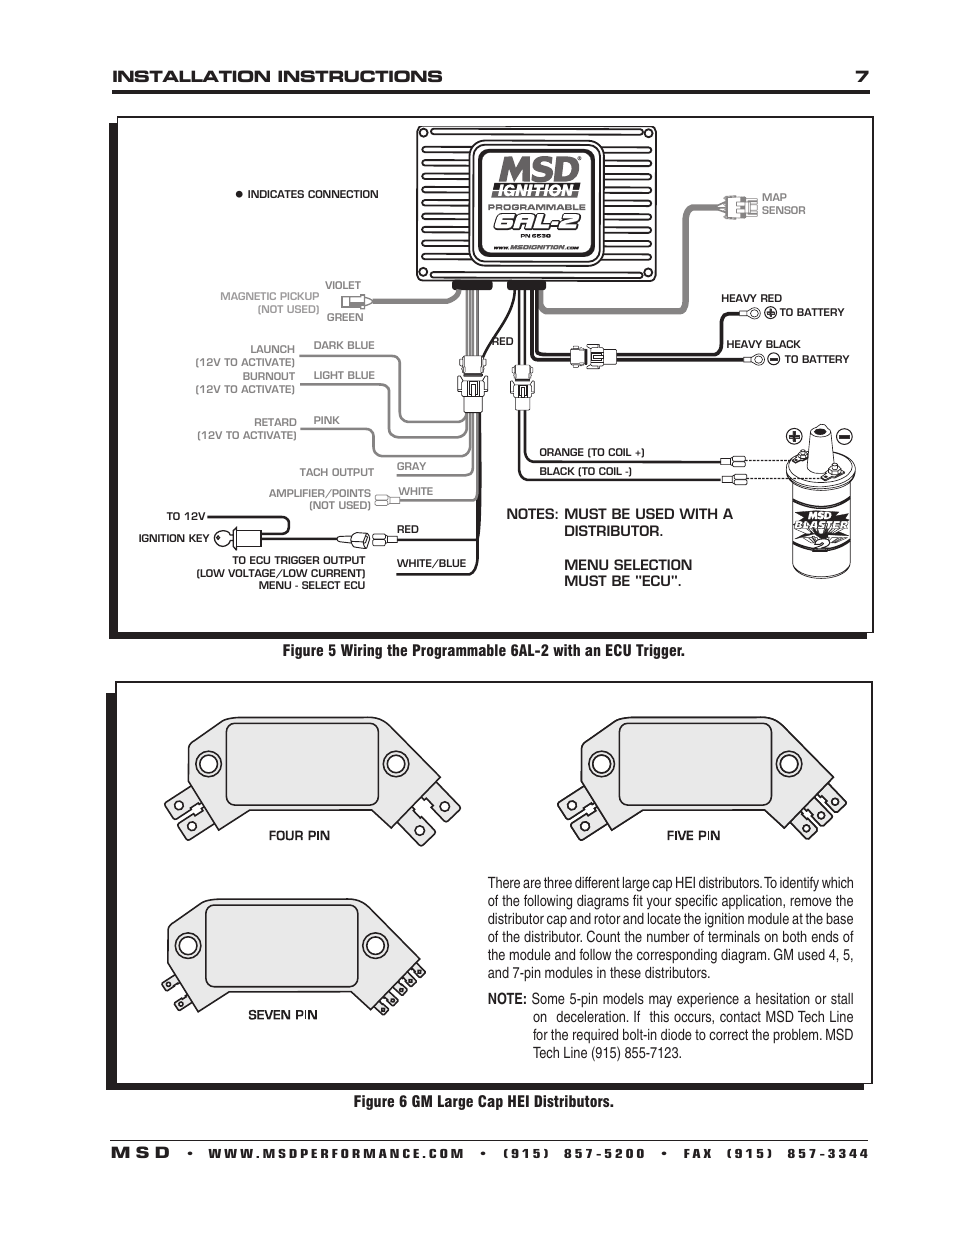 msd 6530 digital programmable 6al 2 installation page7 msd 6530 digital programmable 6al 2 installation user manual msd 6al2 wiring diagram at reclaimingppi.co